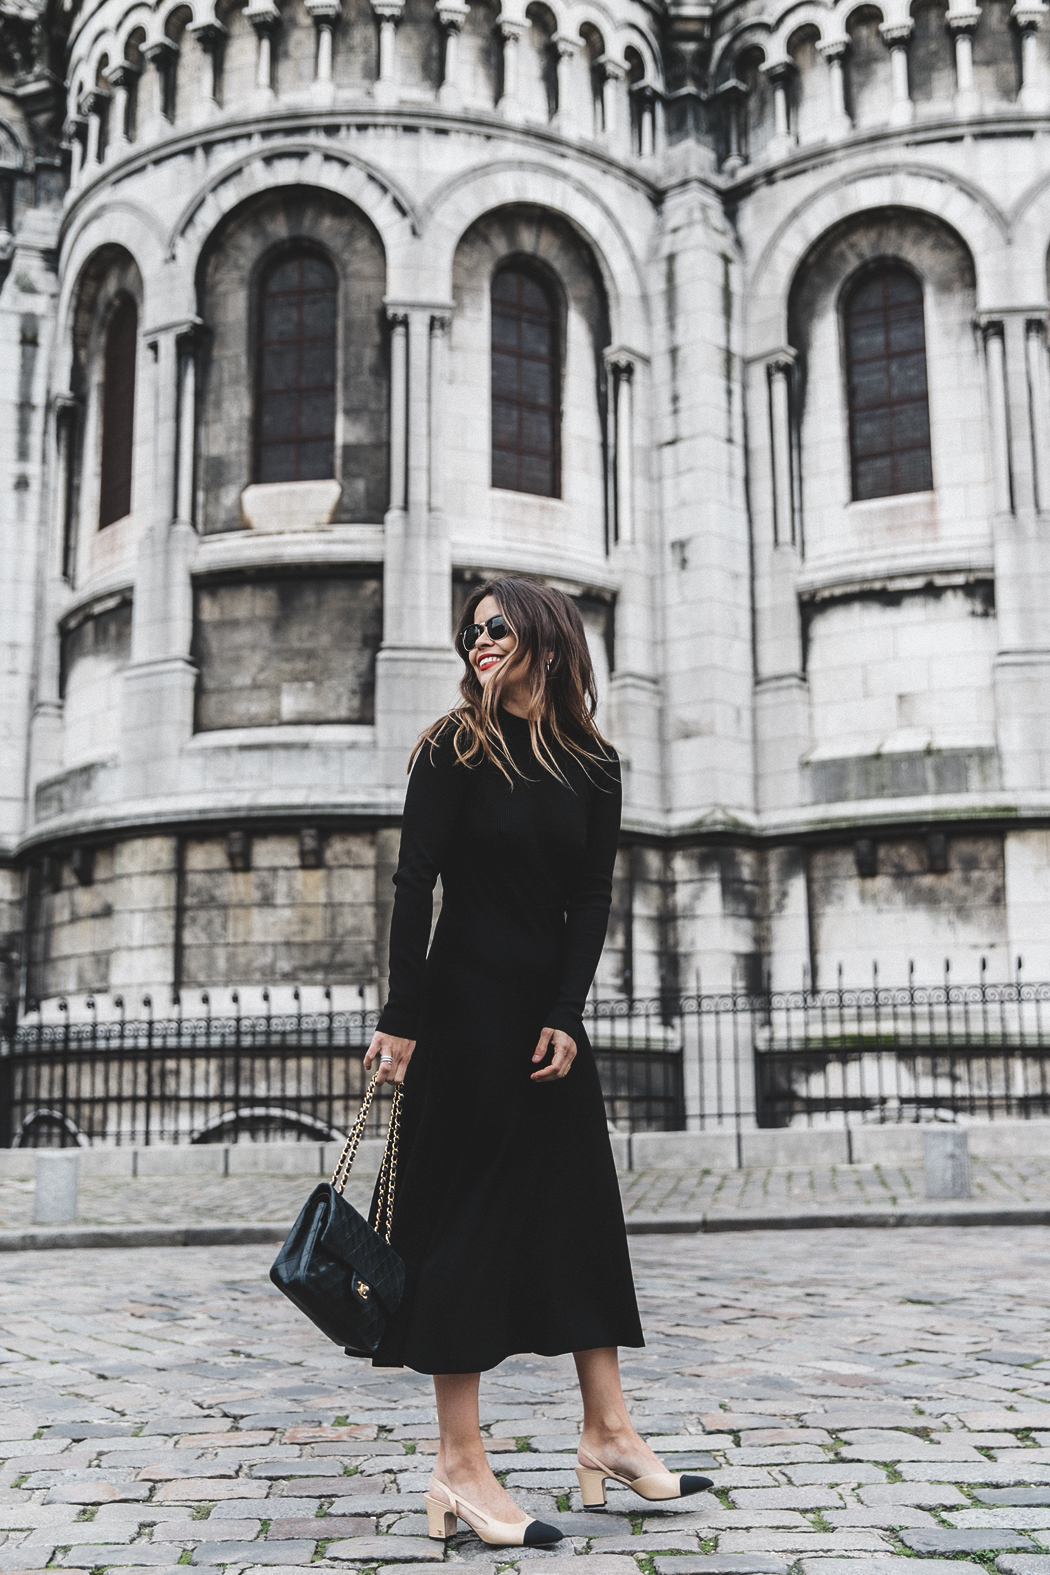 Backless_Dress-Black_Dress-Chanel_Shoes-Paris-PFW-Paris_Fashion_Week_Fall_2016-55